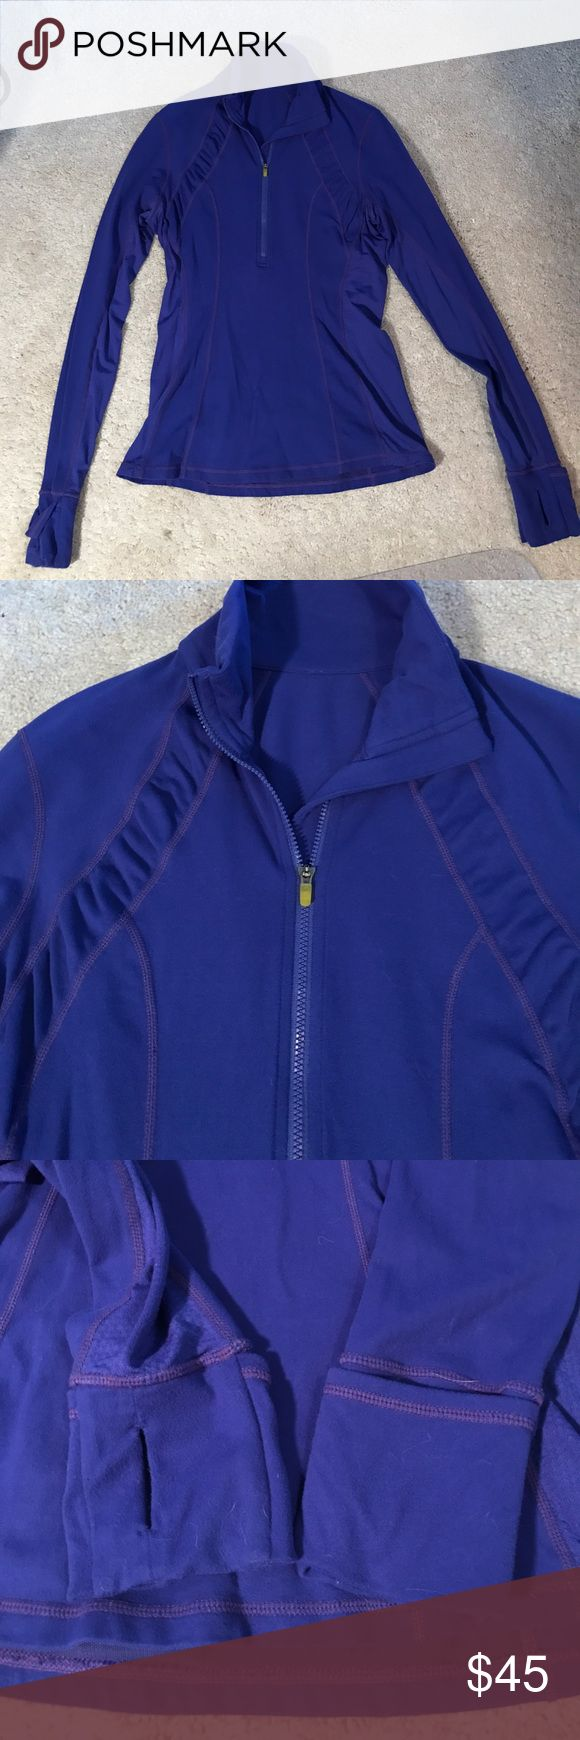 """Lululemon run energy pullover Lululemon rum energy pullover. Size 8. Wish blue. Older (""""vintage"""") lululemon, meaning softer fabric and great quality. This is a thinner top and runs a bit small for an 8. Would fit a 6 or 8 well. Form fitting. Half zip in the front and a zip pocket on the pack. Cuffs have thumb holes and cuffins. Comes from a non smoking, cat friendly home. lululemon athletica Tops Tees - Long Sleeve"""